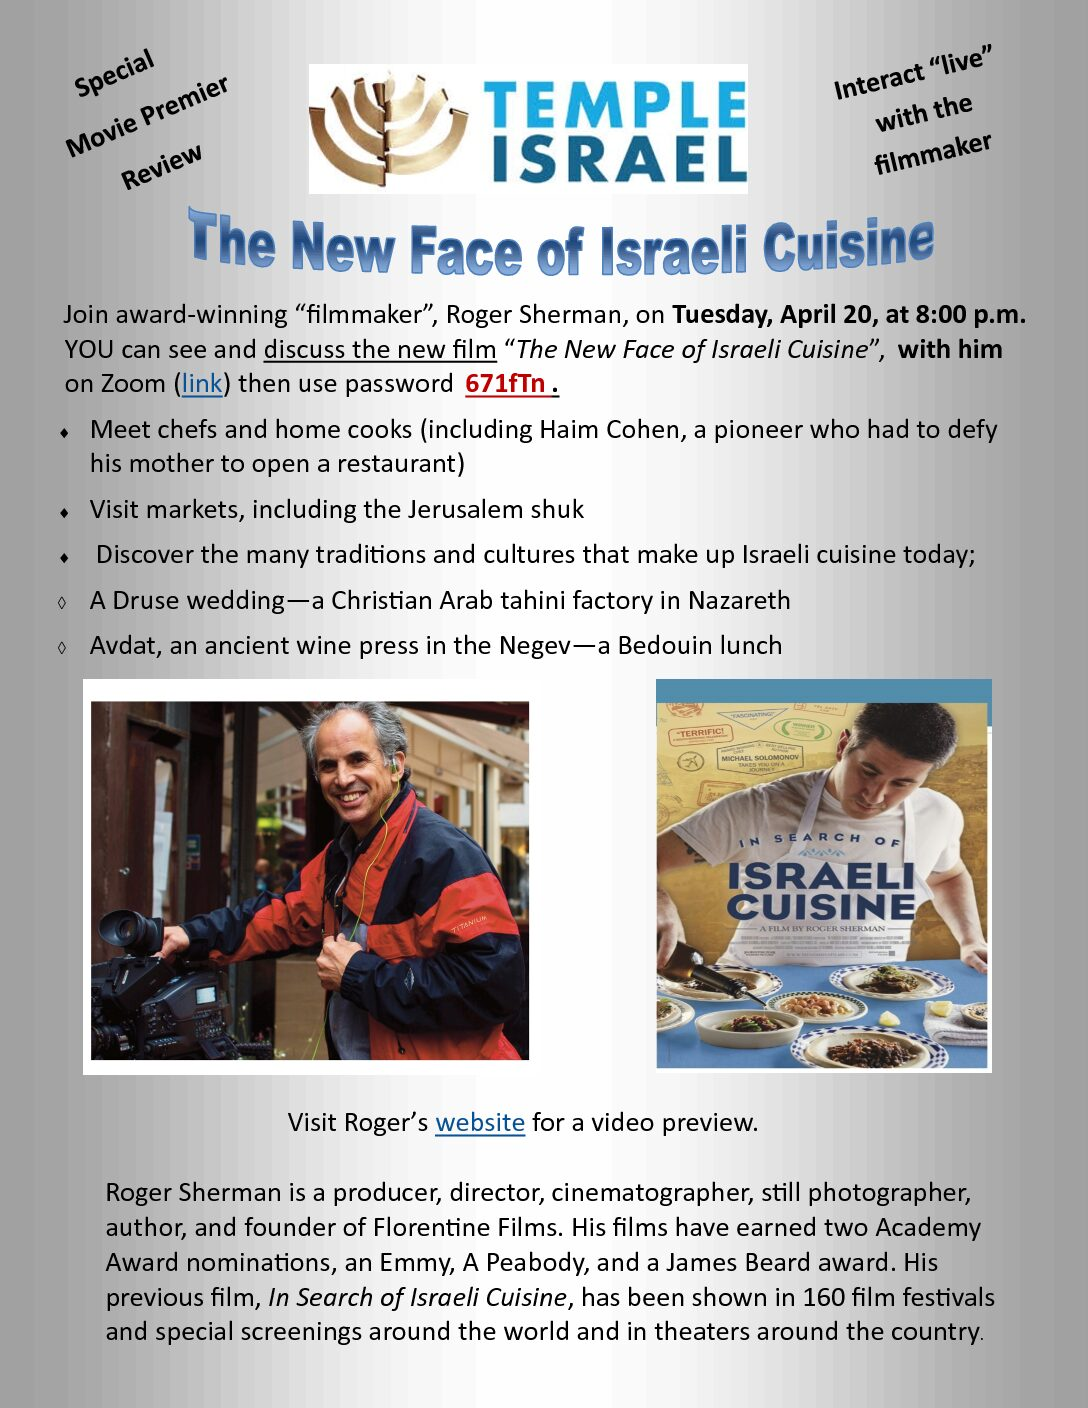 The New Face of Israeli Cuisine - An Interactive program